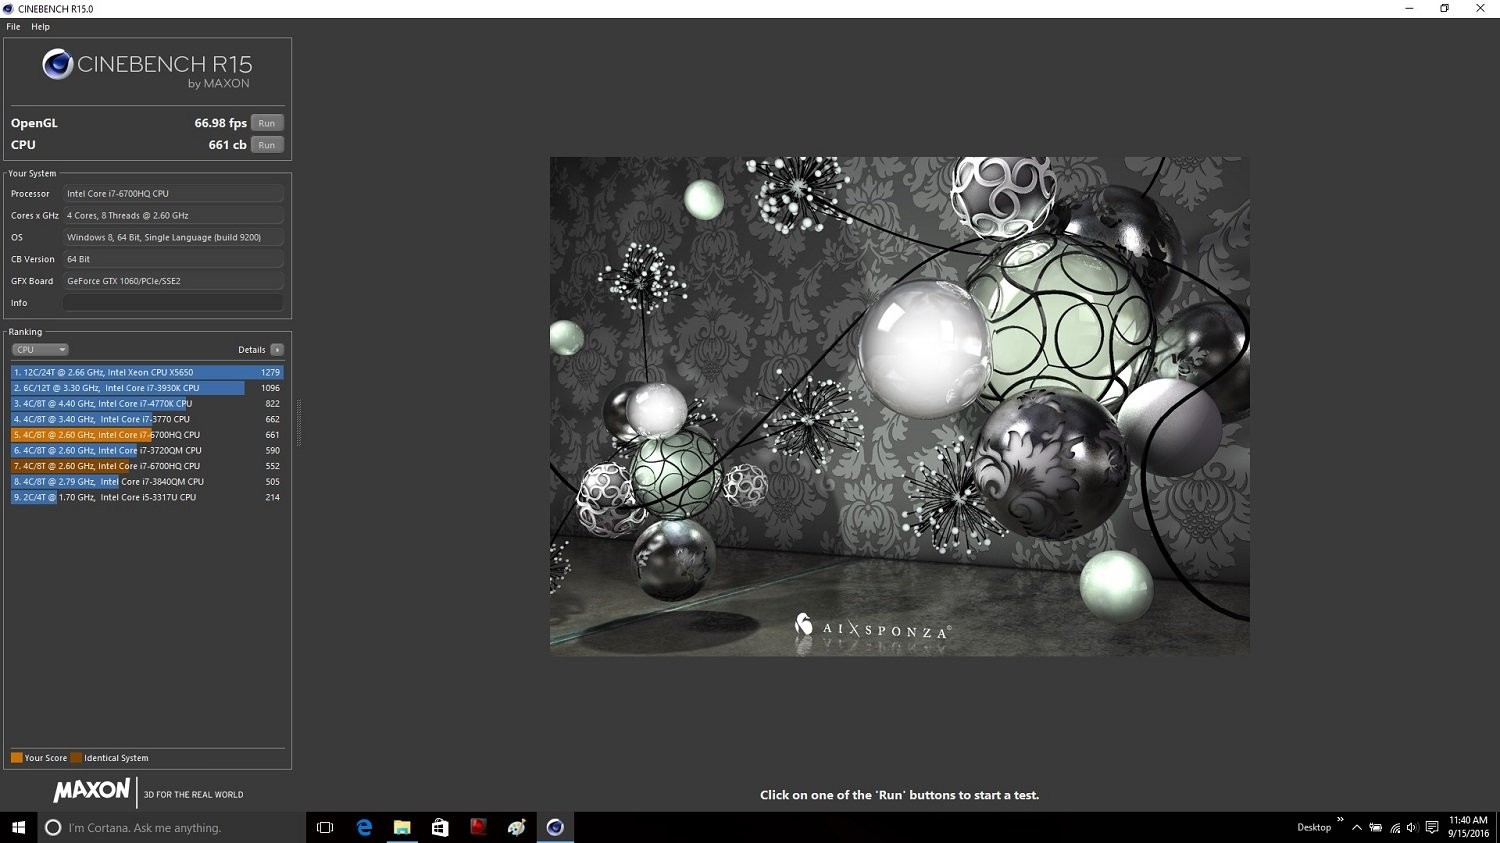 MSI GE72VR 6RF CineBench R 15